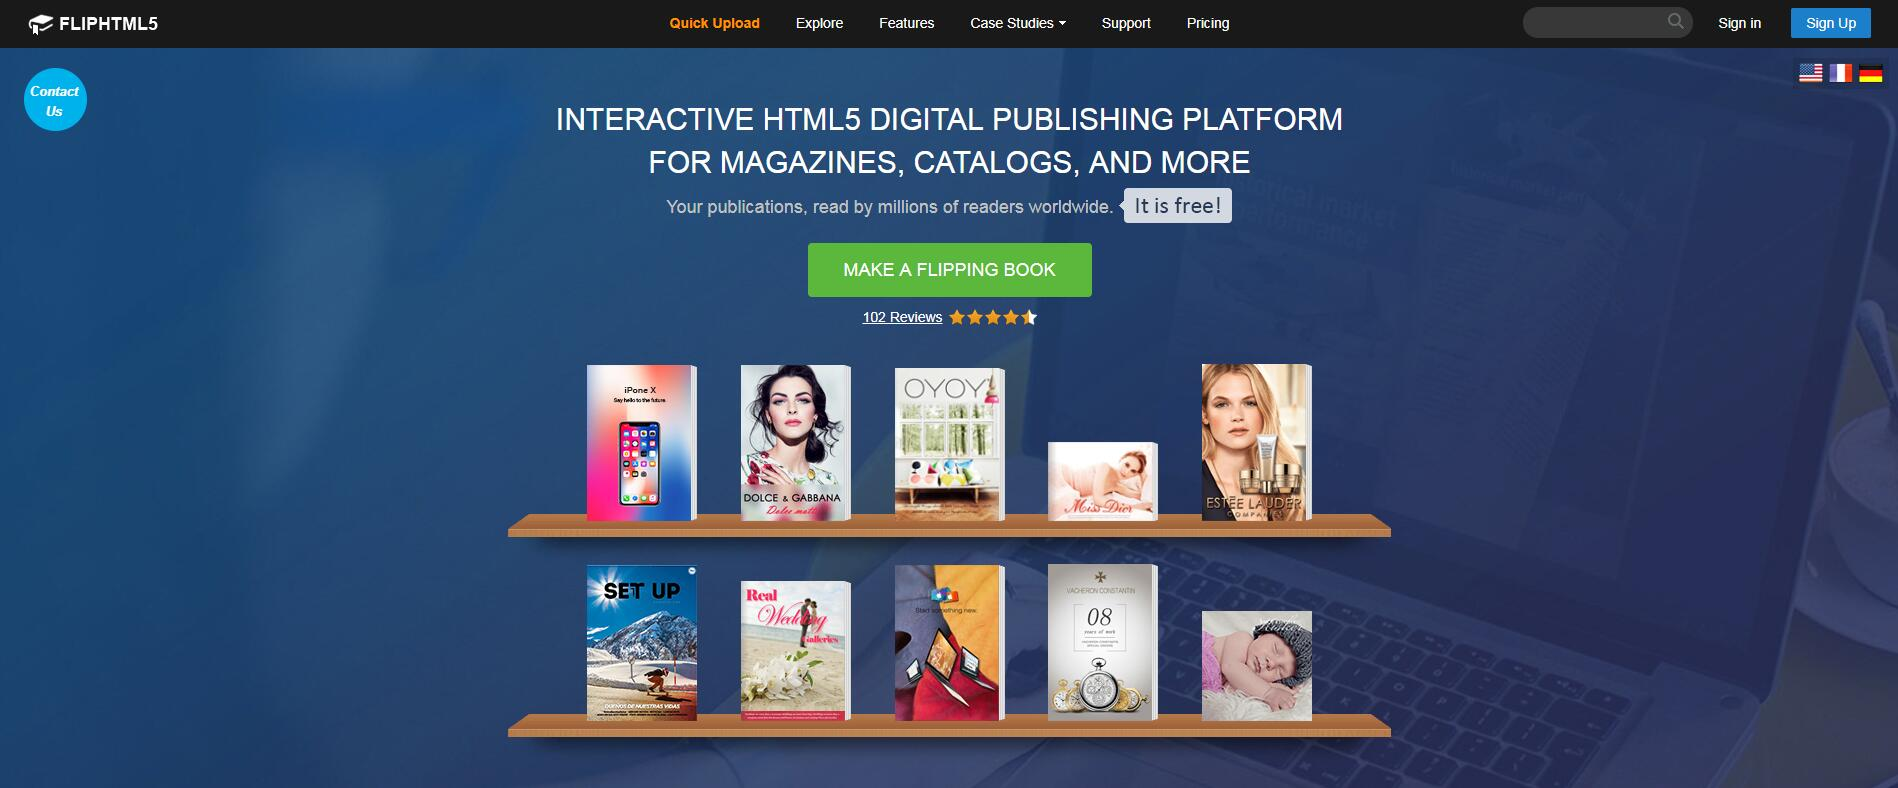 FlipHTML5 Rolls Out an Online Flipbook Publisher for Online Publishing